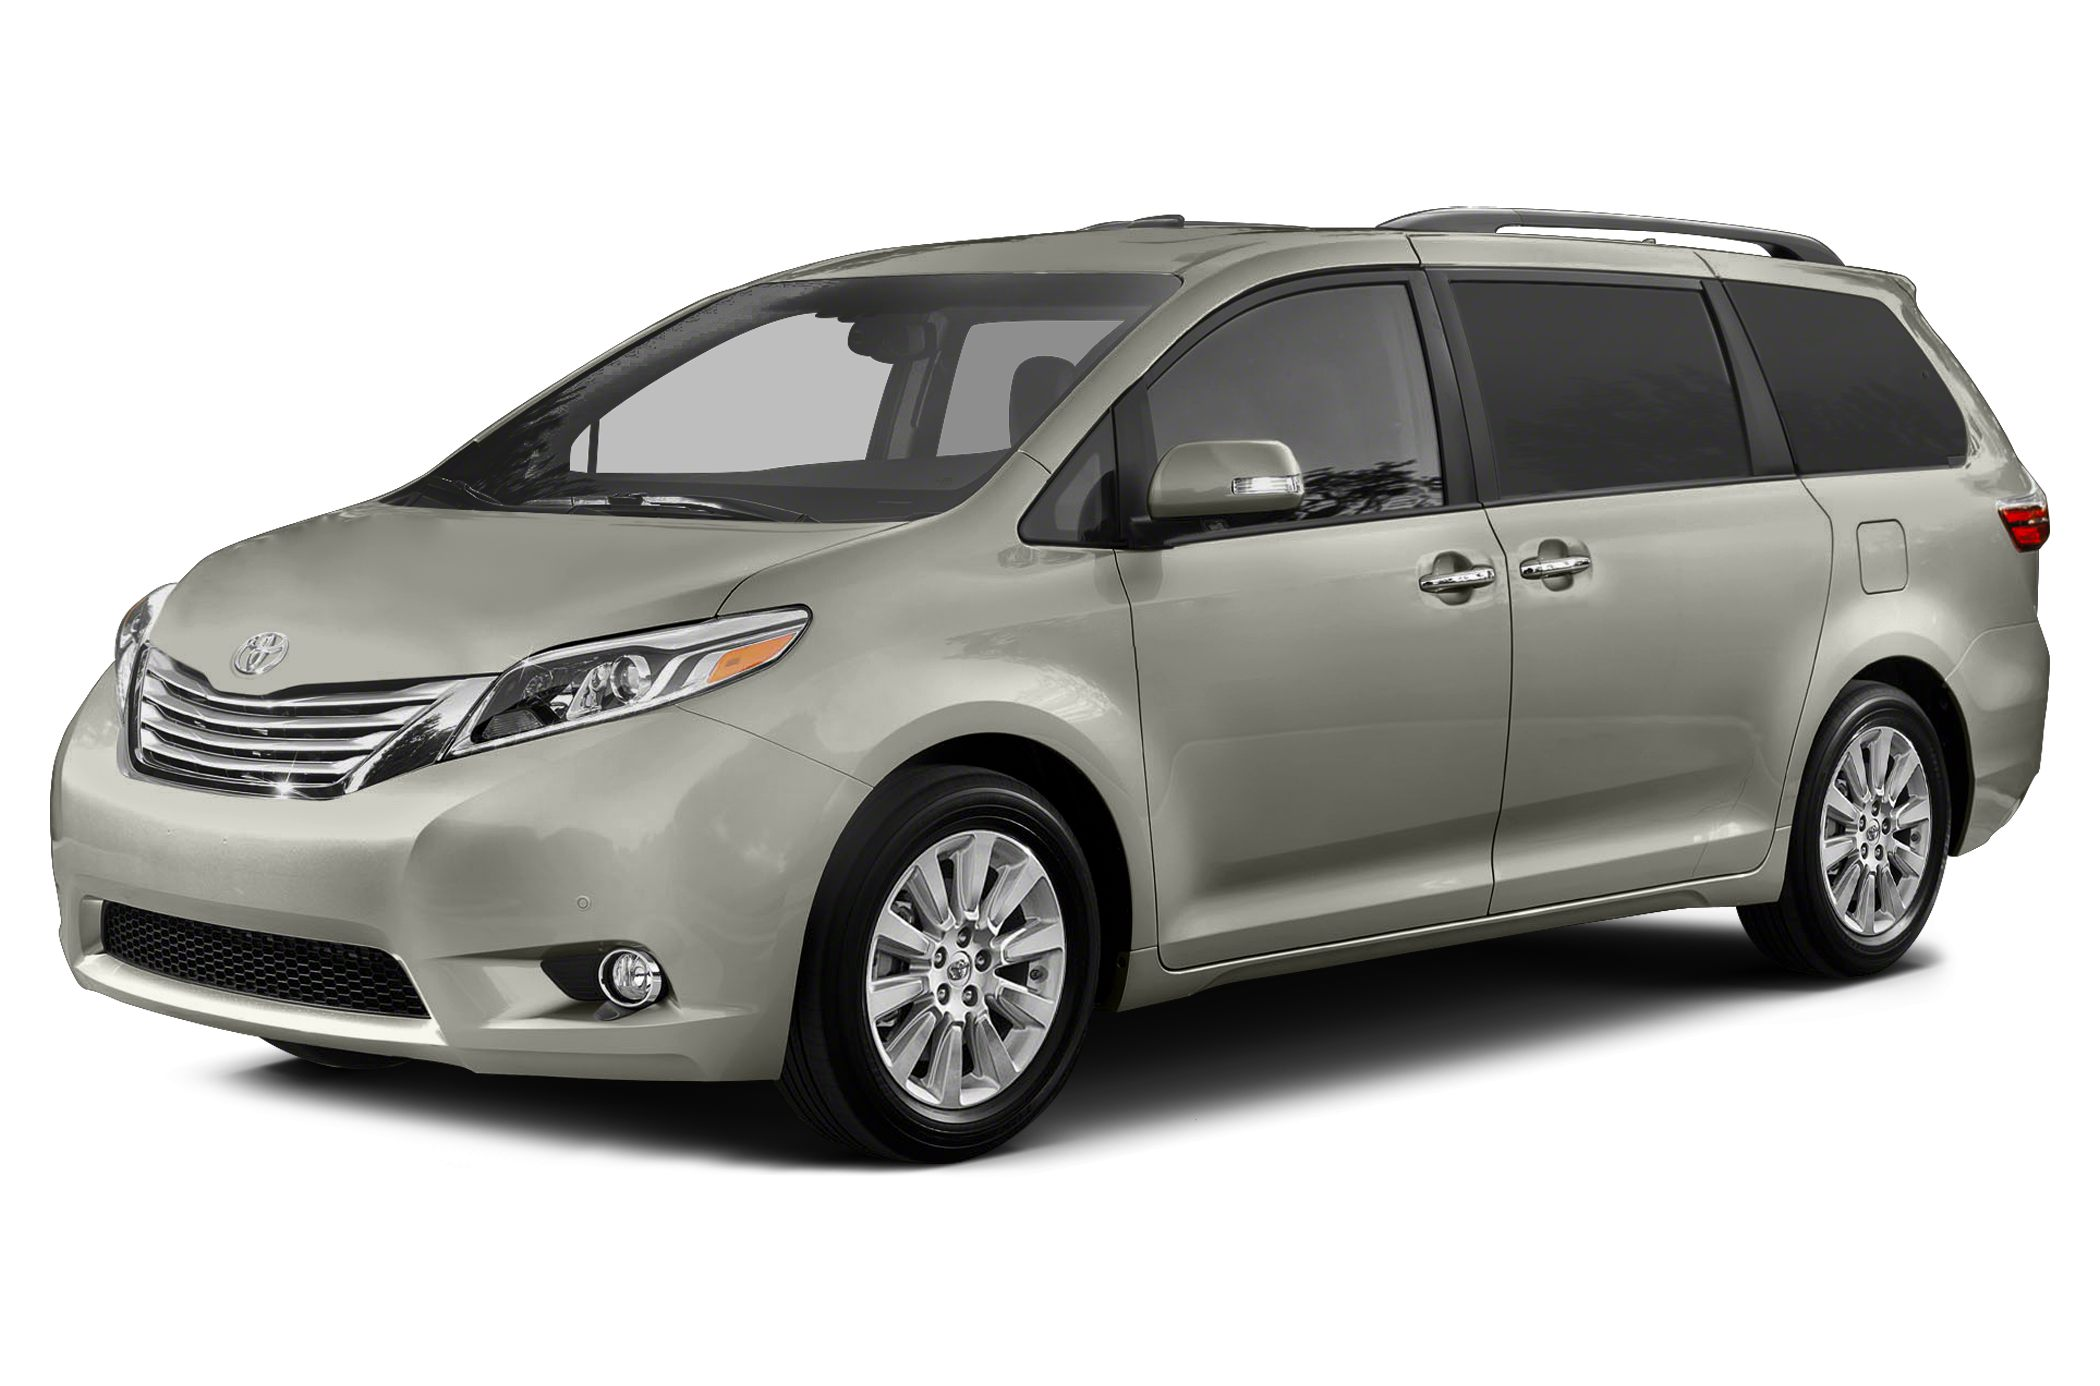 2015 Toyota Sienna XLE Minivan for sale in New York for $36,200 with 0 miles